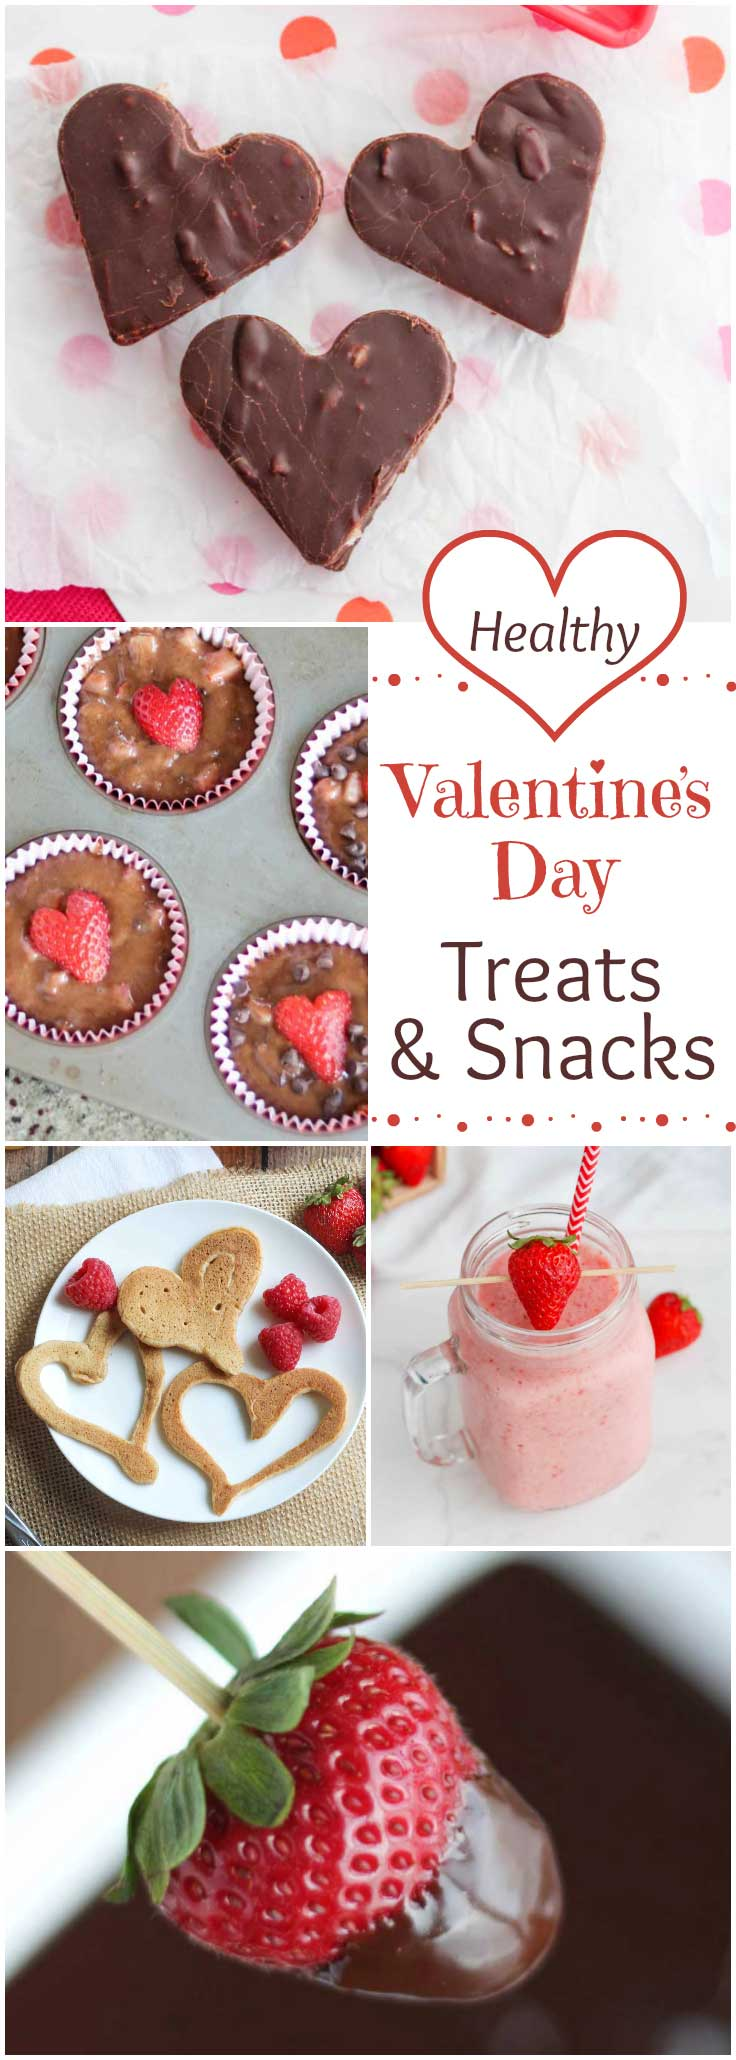 A decadent collection of easy, healthy Valentine's Day treats and Valentine snacks! Several have only 3 or 4 ingredients – so simple! Great Valentine ideas for after-school snacks, Valentine class parties, even romantic desserts! From healthier brownies and fudge to frozen heart pops, lava dip, heart-studded fruit kabobs … and more! | #Valentines #treats #Valentine #ValentinesDay #healthyValentine #hearts #healthyrecipes #easyrecipes #healthydessert #healthytreats | www.TwoHealthyKitchens.com